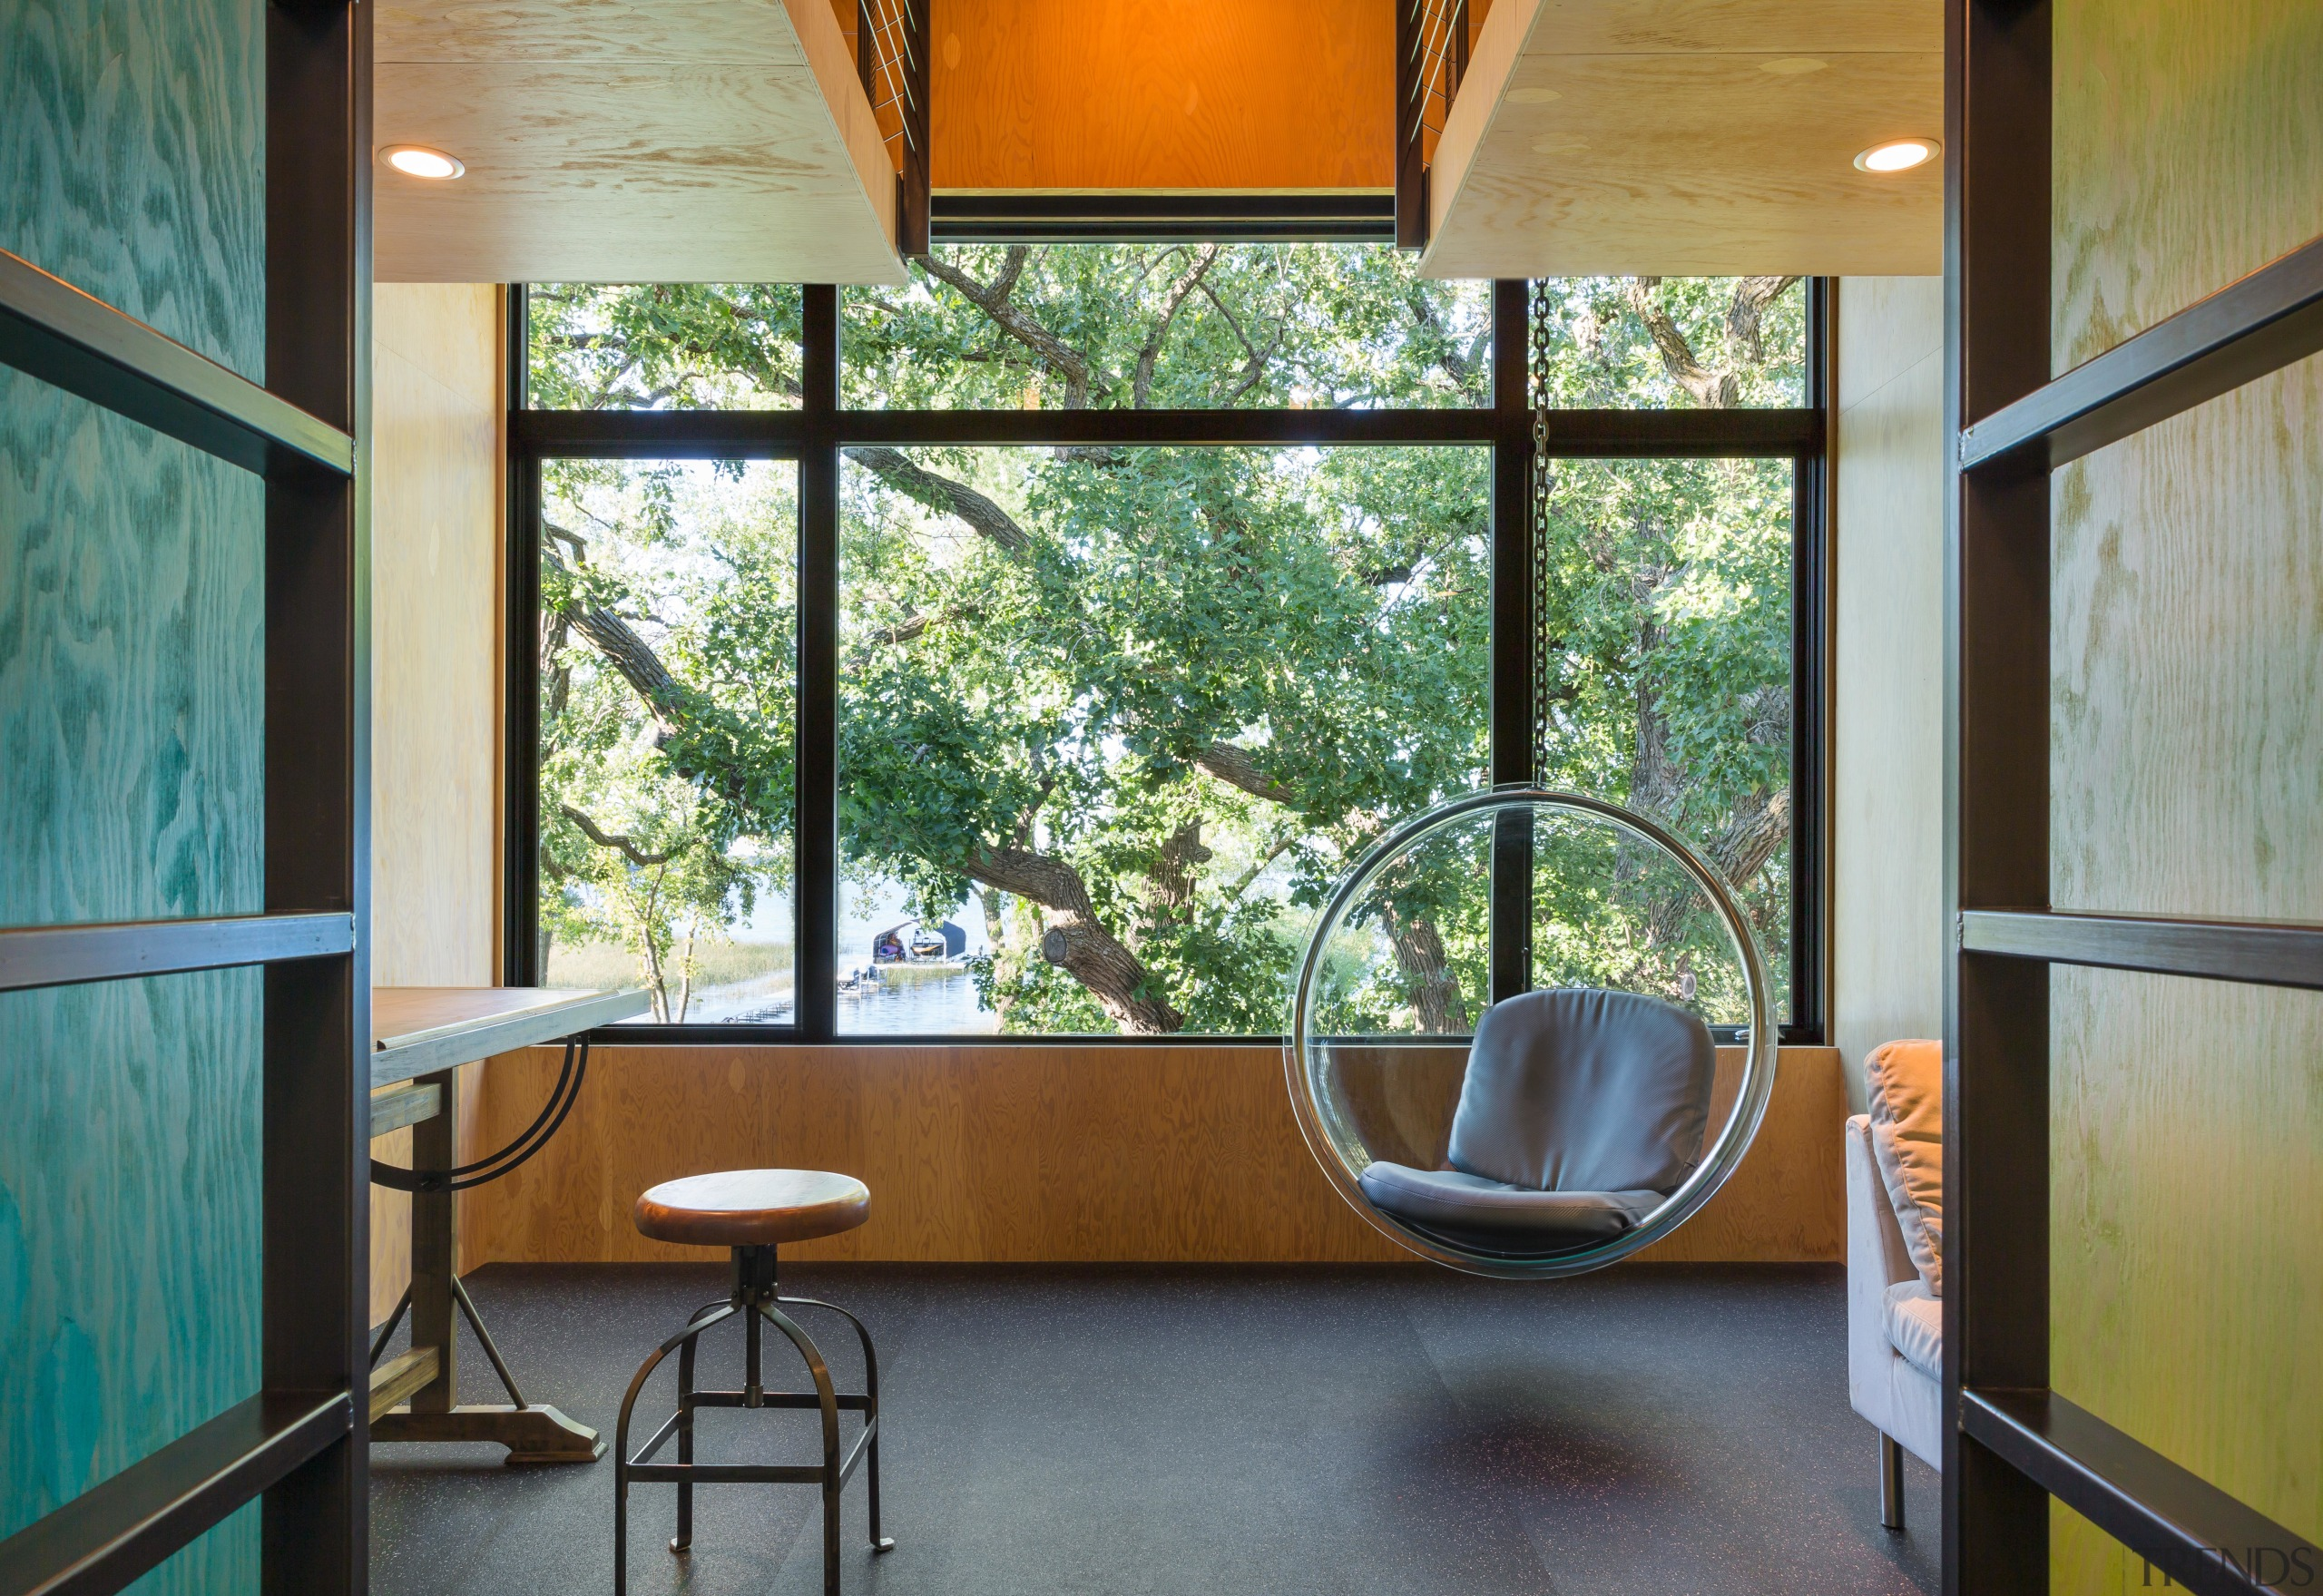 Materials in this children's room – plywood lined architecture, daylighting, home, house, interior design, real estate, table, window, wood